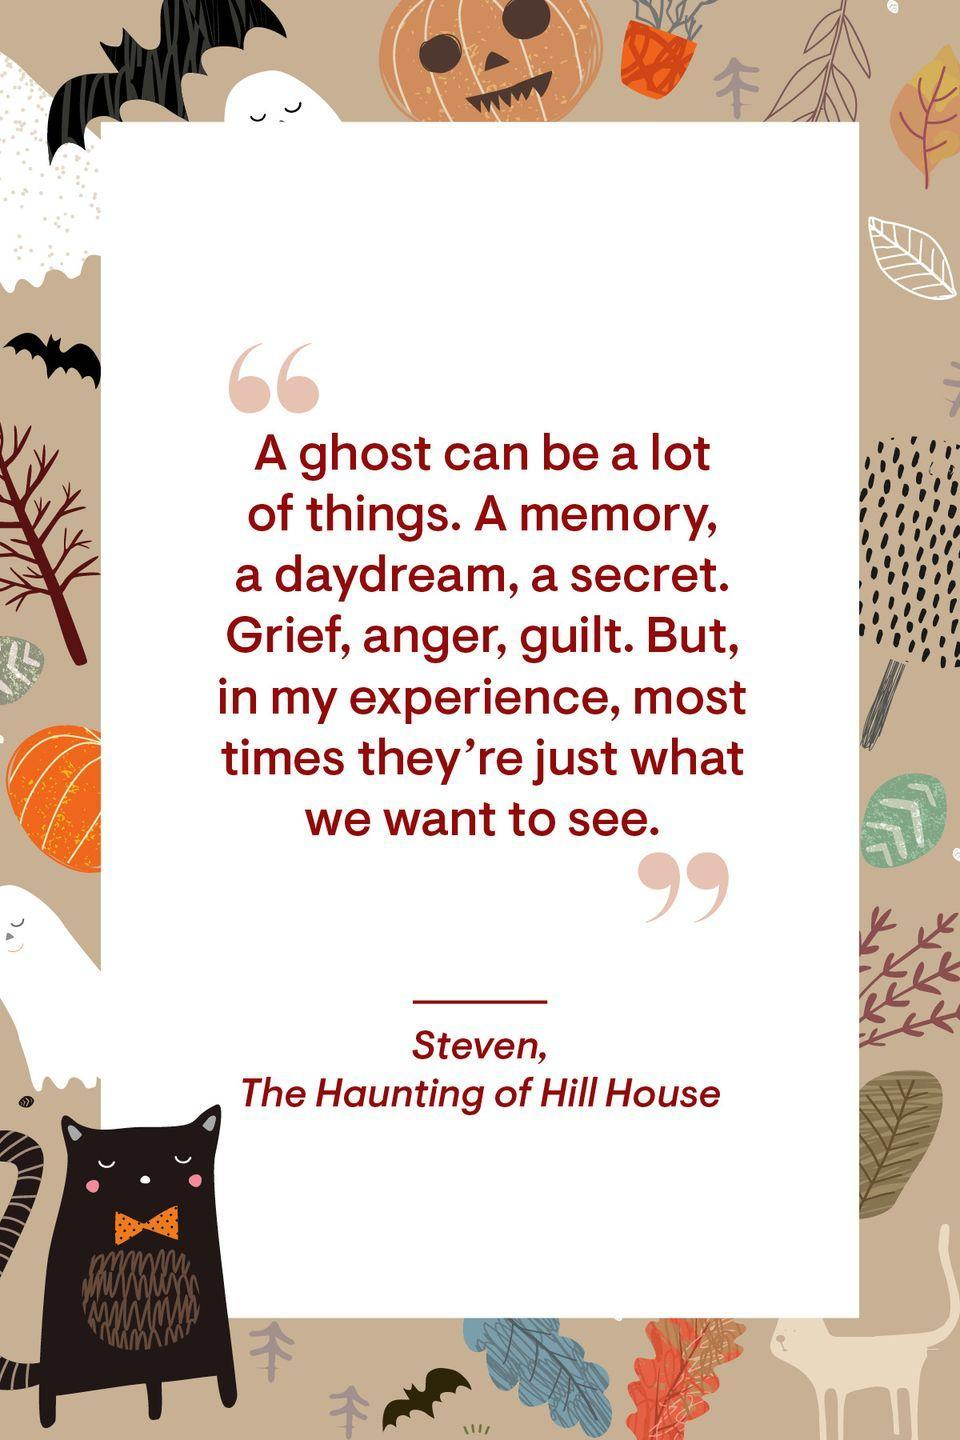 """<p>""""A ghost can be a lot of things. A memory, a daydream, a secret. Grief, anger, guilt. But, in my experience, most times they're just what we want to see.""""</p>"""